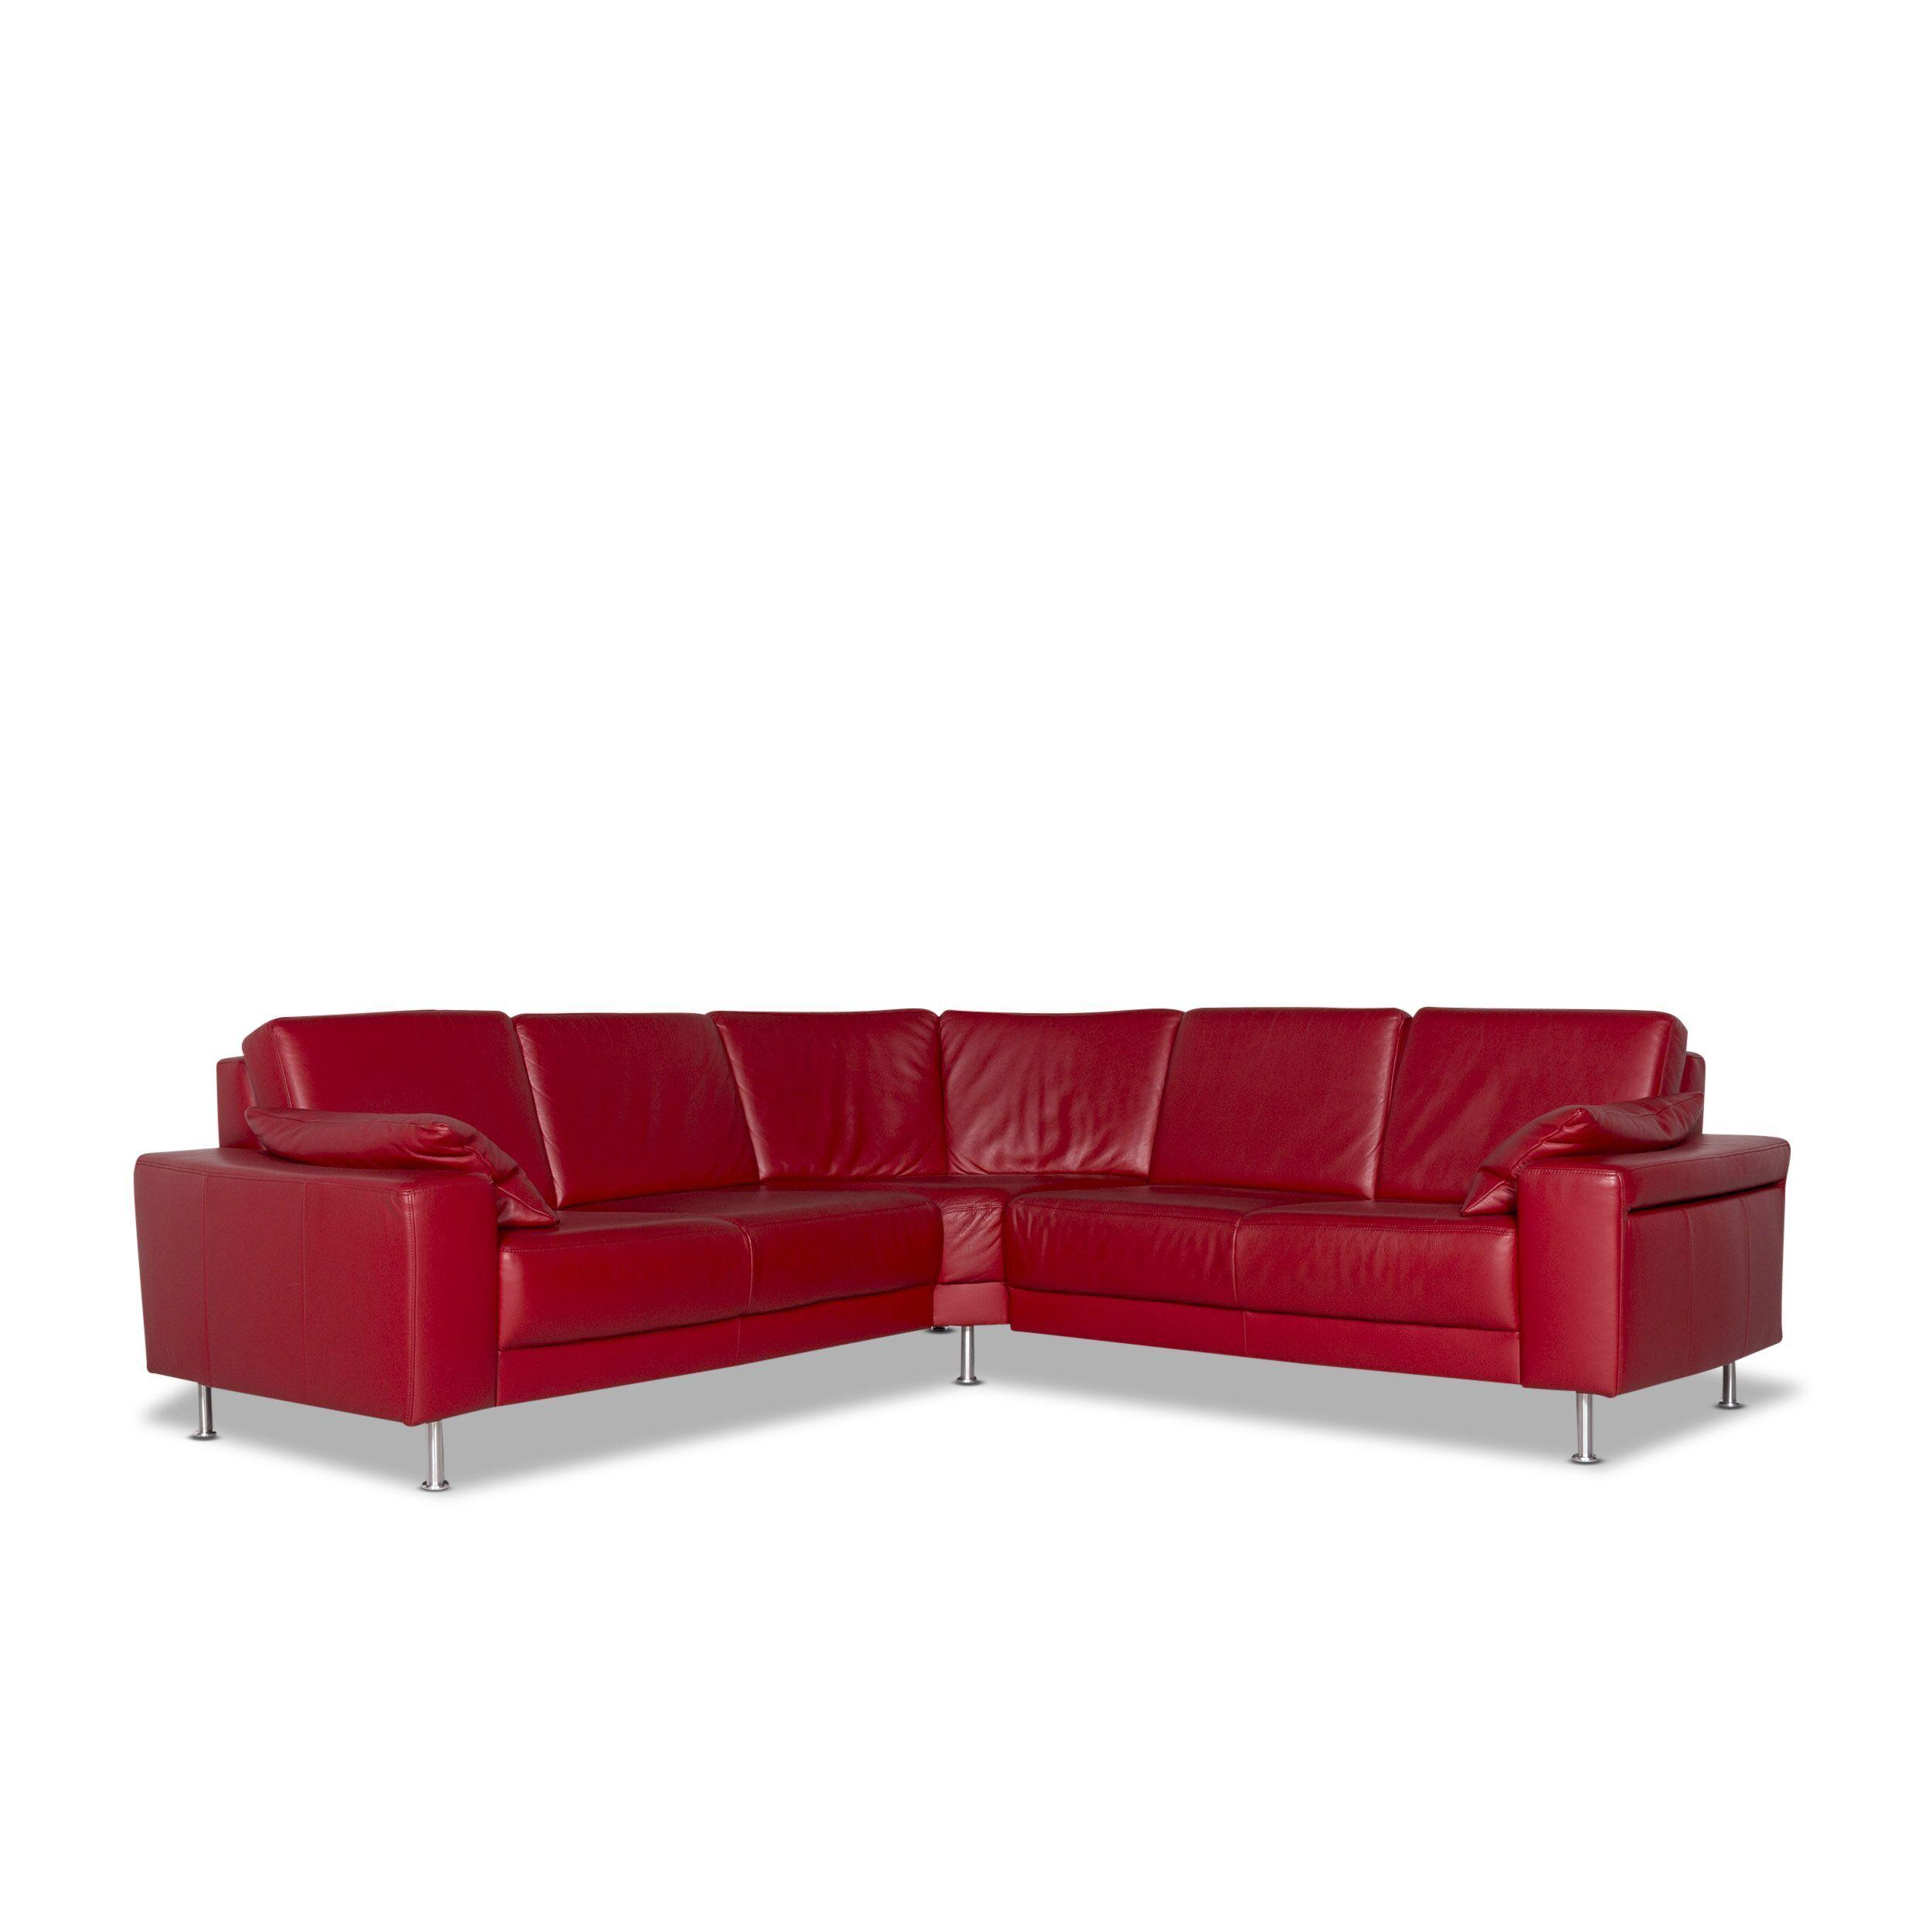 Musterring Sofa Mit Relaxfunktion Leder